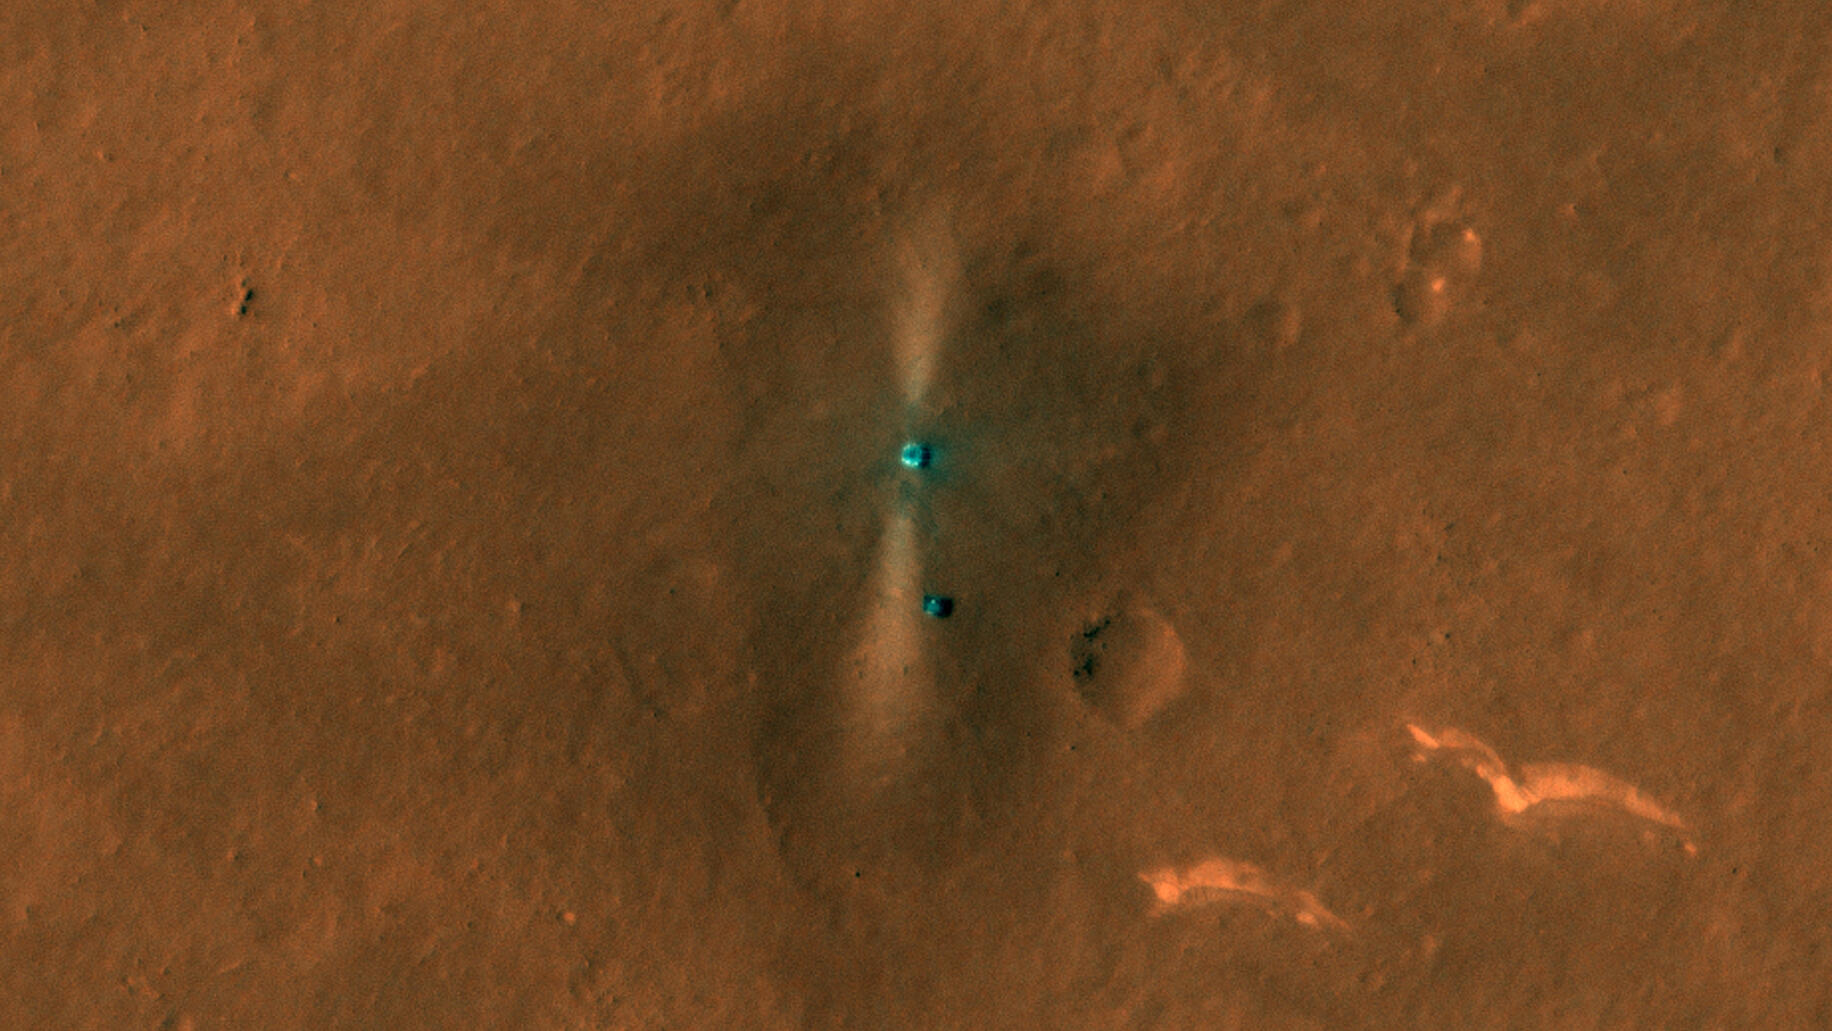 NASA Mars orbiter grabs dramatic first view of China's elusive rover - CNET